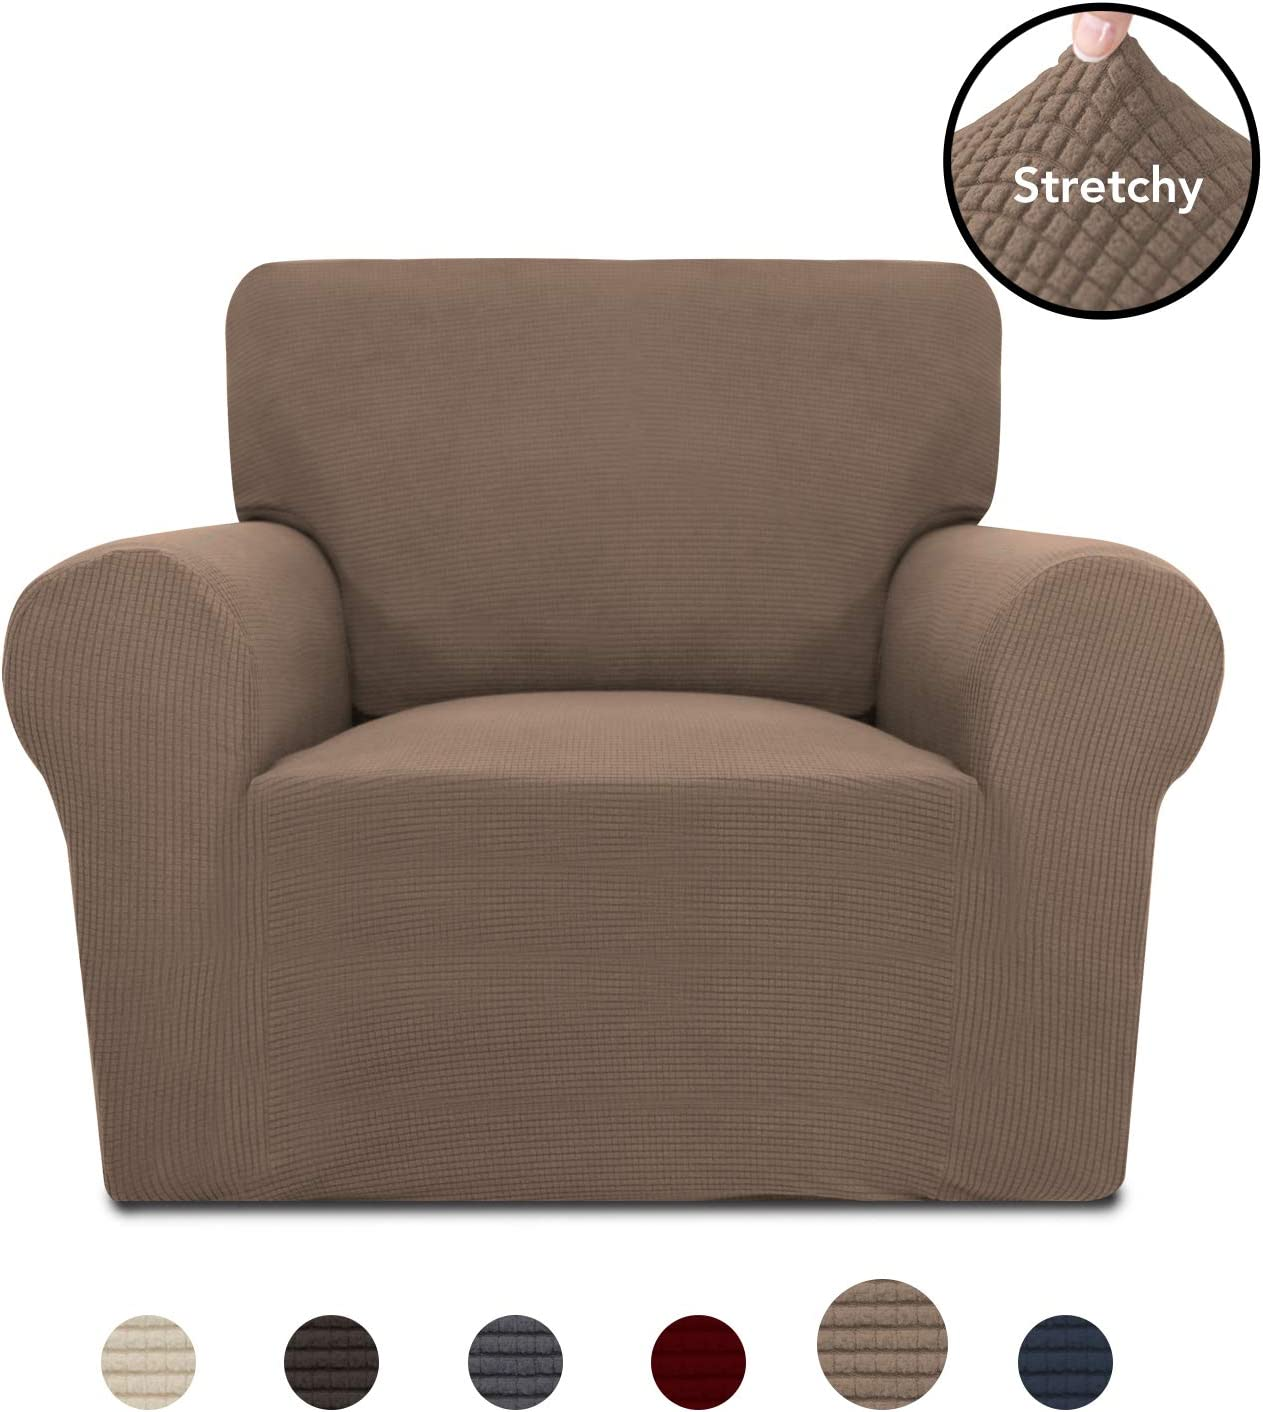 PureFit Stretch Chair Sofa Slipcover – Spandex Jacquard Anti-Slip Soft Couch Sofa Cover, Washable Furniture Protector with Anti-Skid Foam and Elastic Bottom for Kids (Chair, Camel)